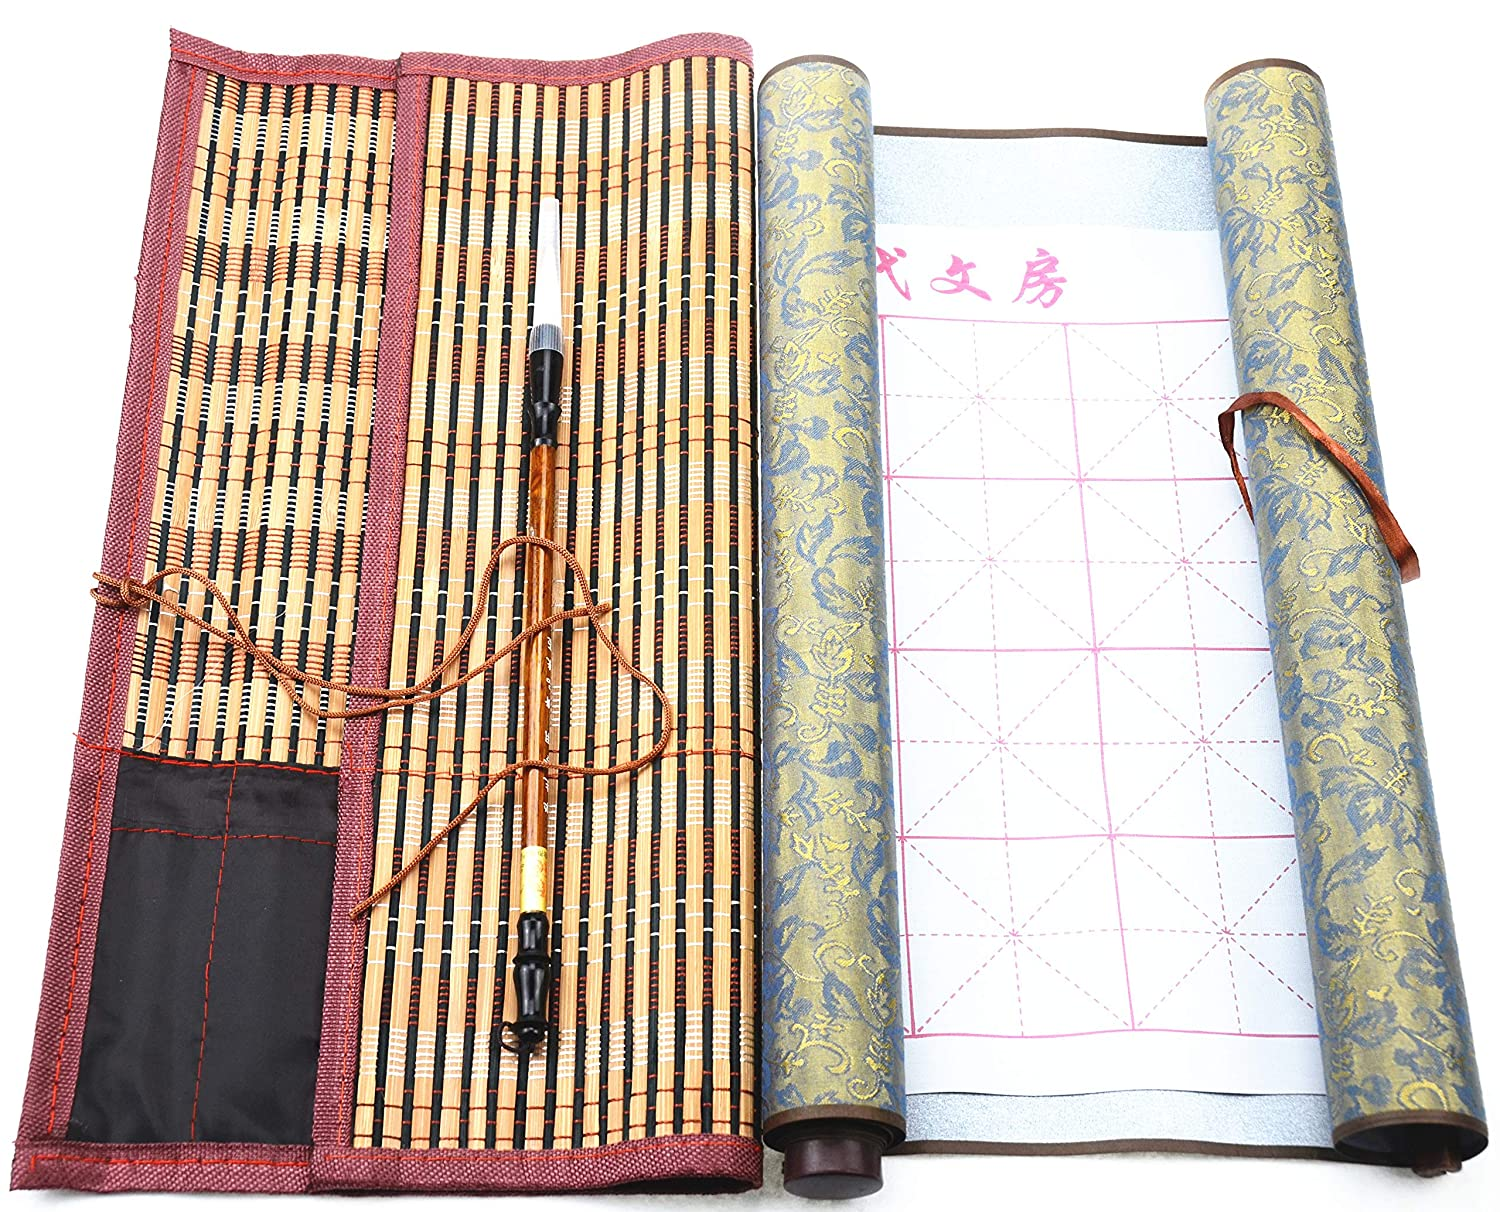 DelieKee Chinese Calligraphy Set Reusable Water Writing Magic Cloth with Drawing Brush Bamboo Wrap Rewritable for Calligraphy Beginners Practice Painting Red,Large /& Small Cloth,4 Items 2 Pcs